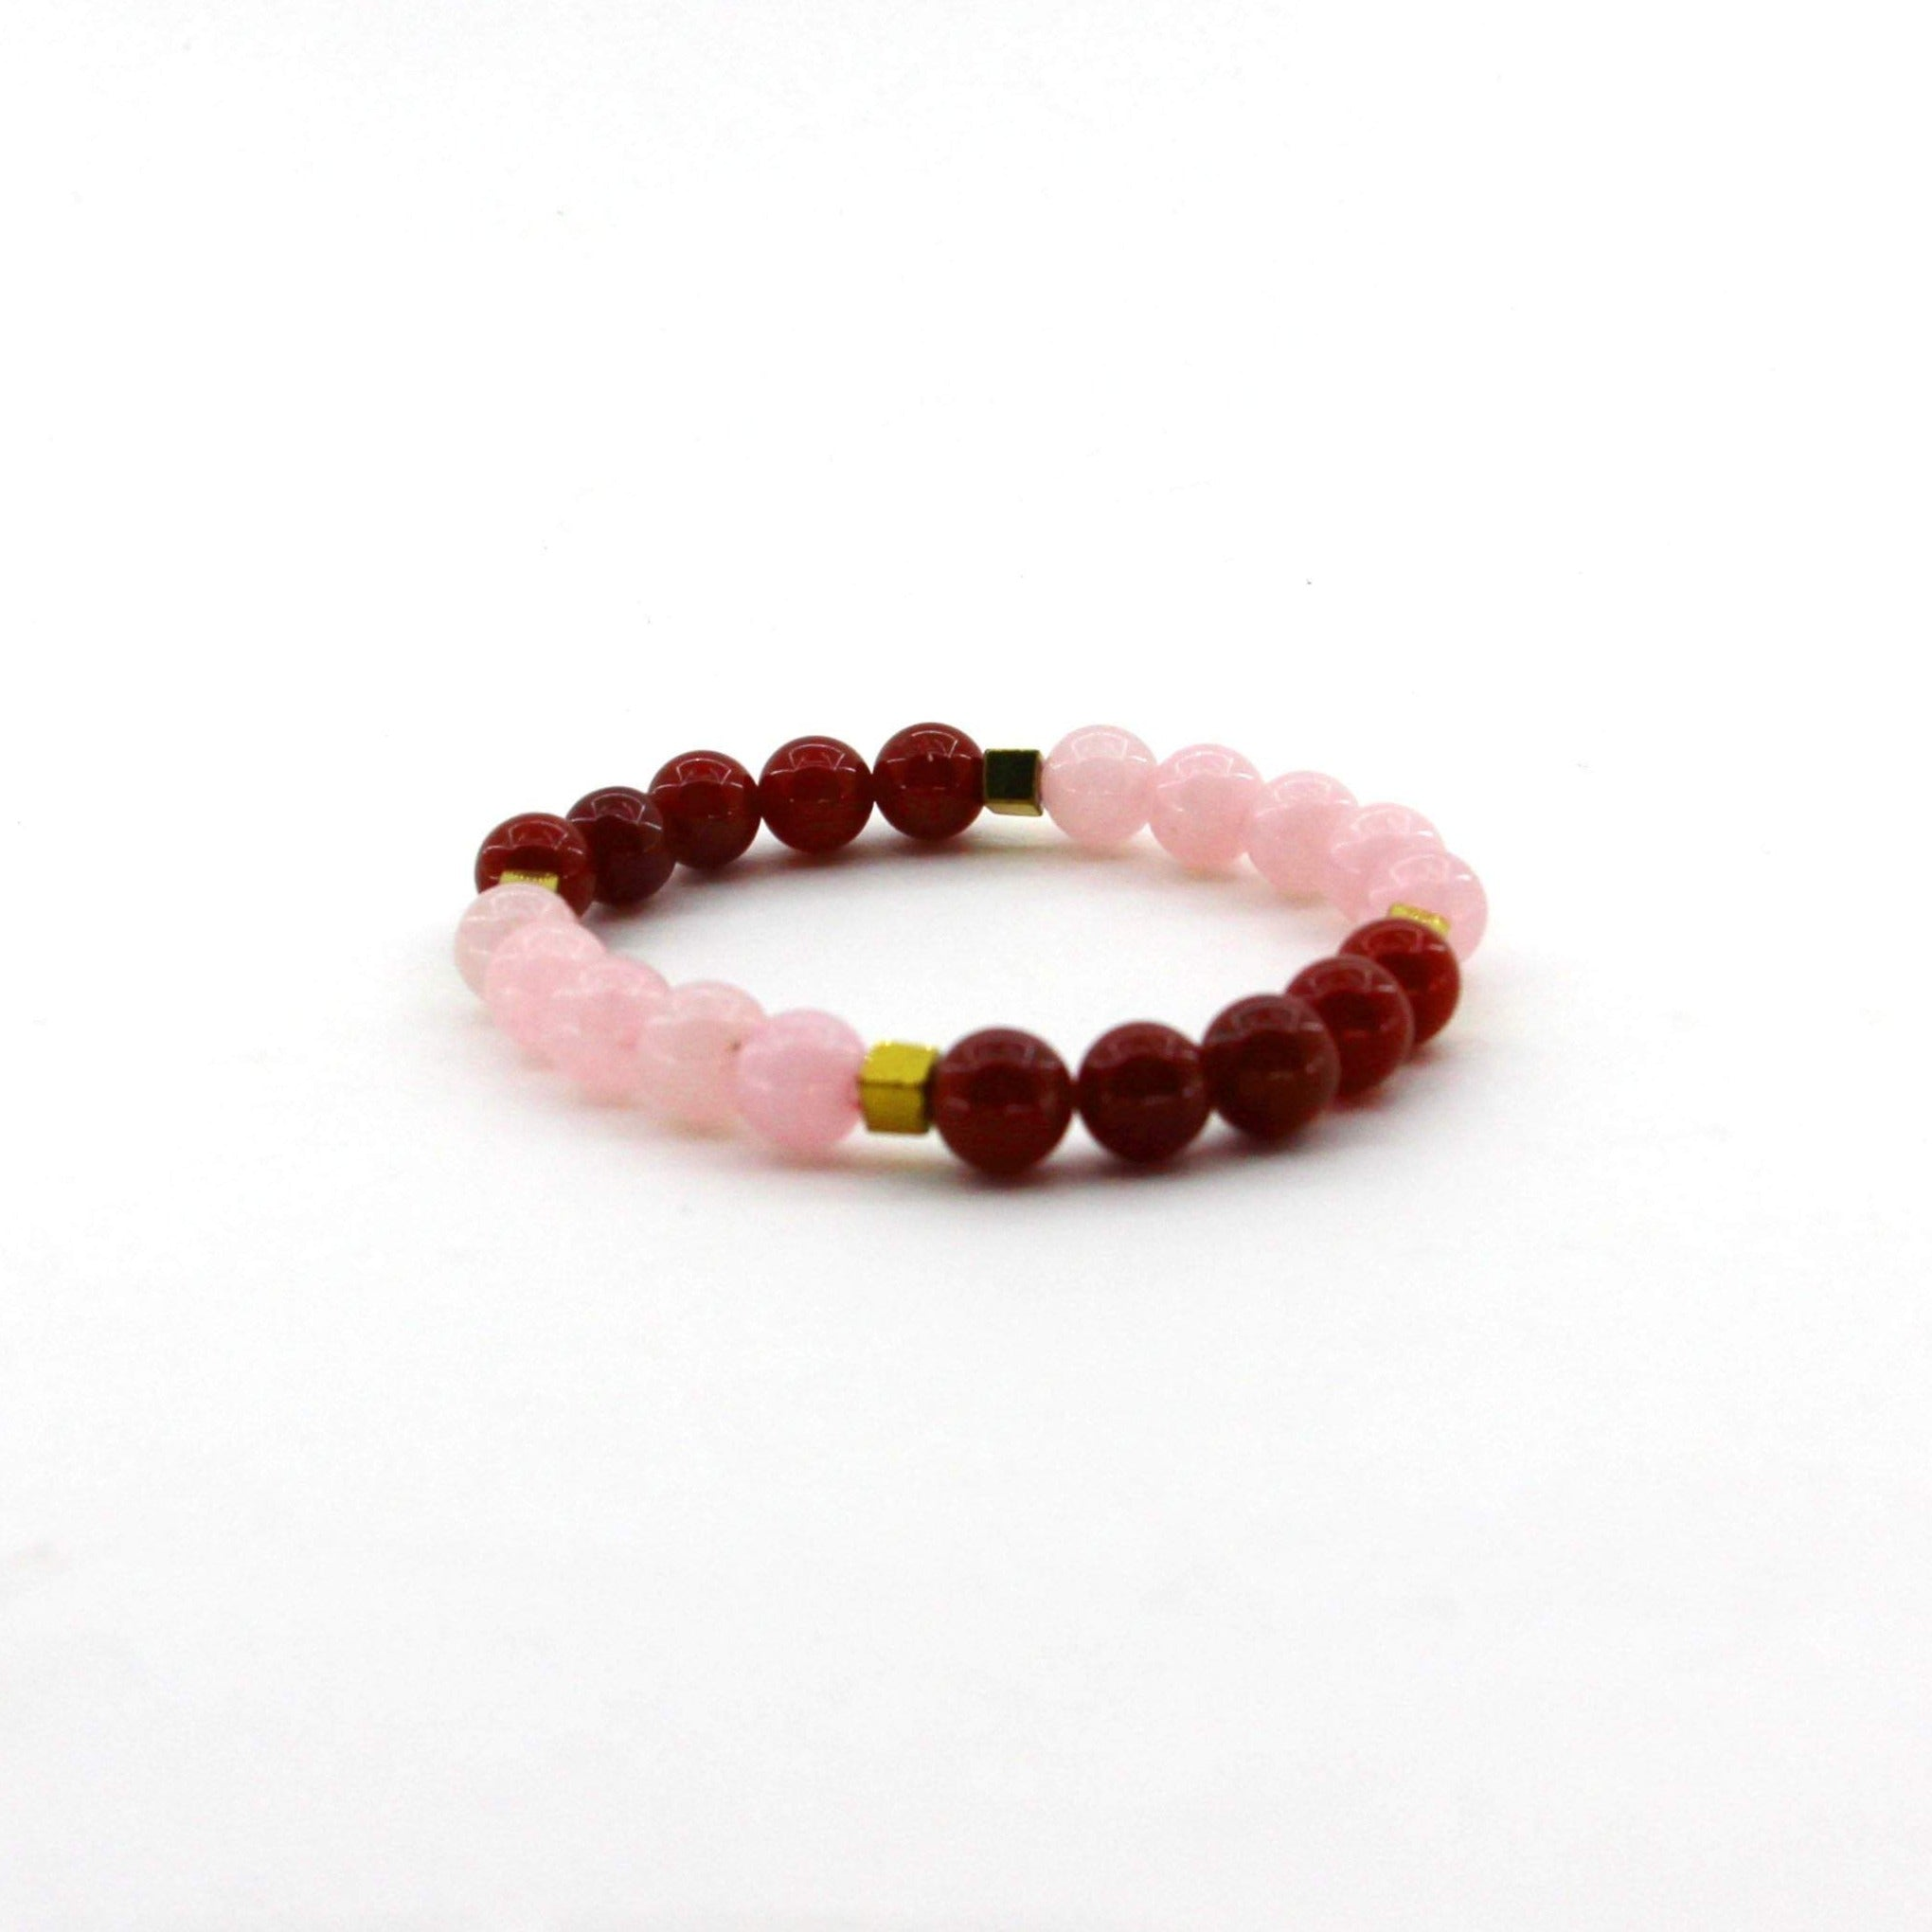 Fertility - Rose Quartz, Carnelian, Hematite - Gemstone Bracelet